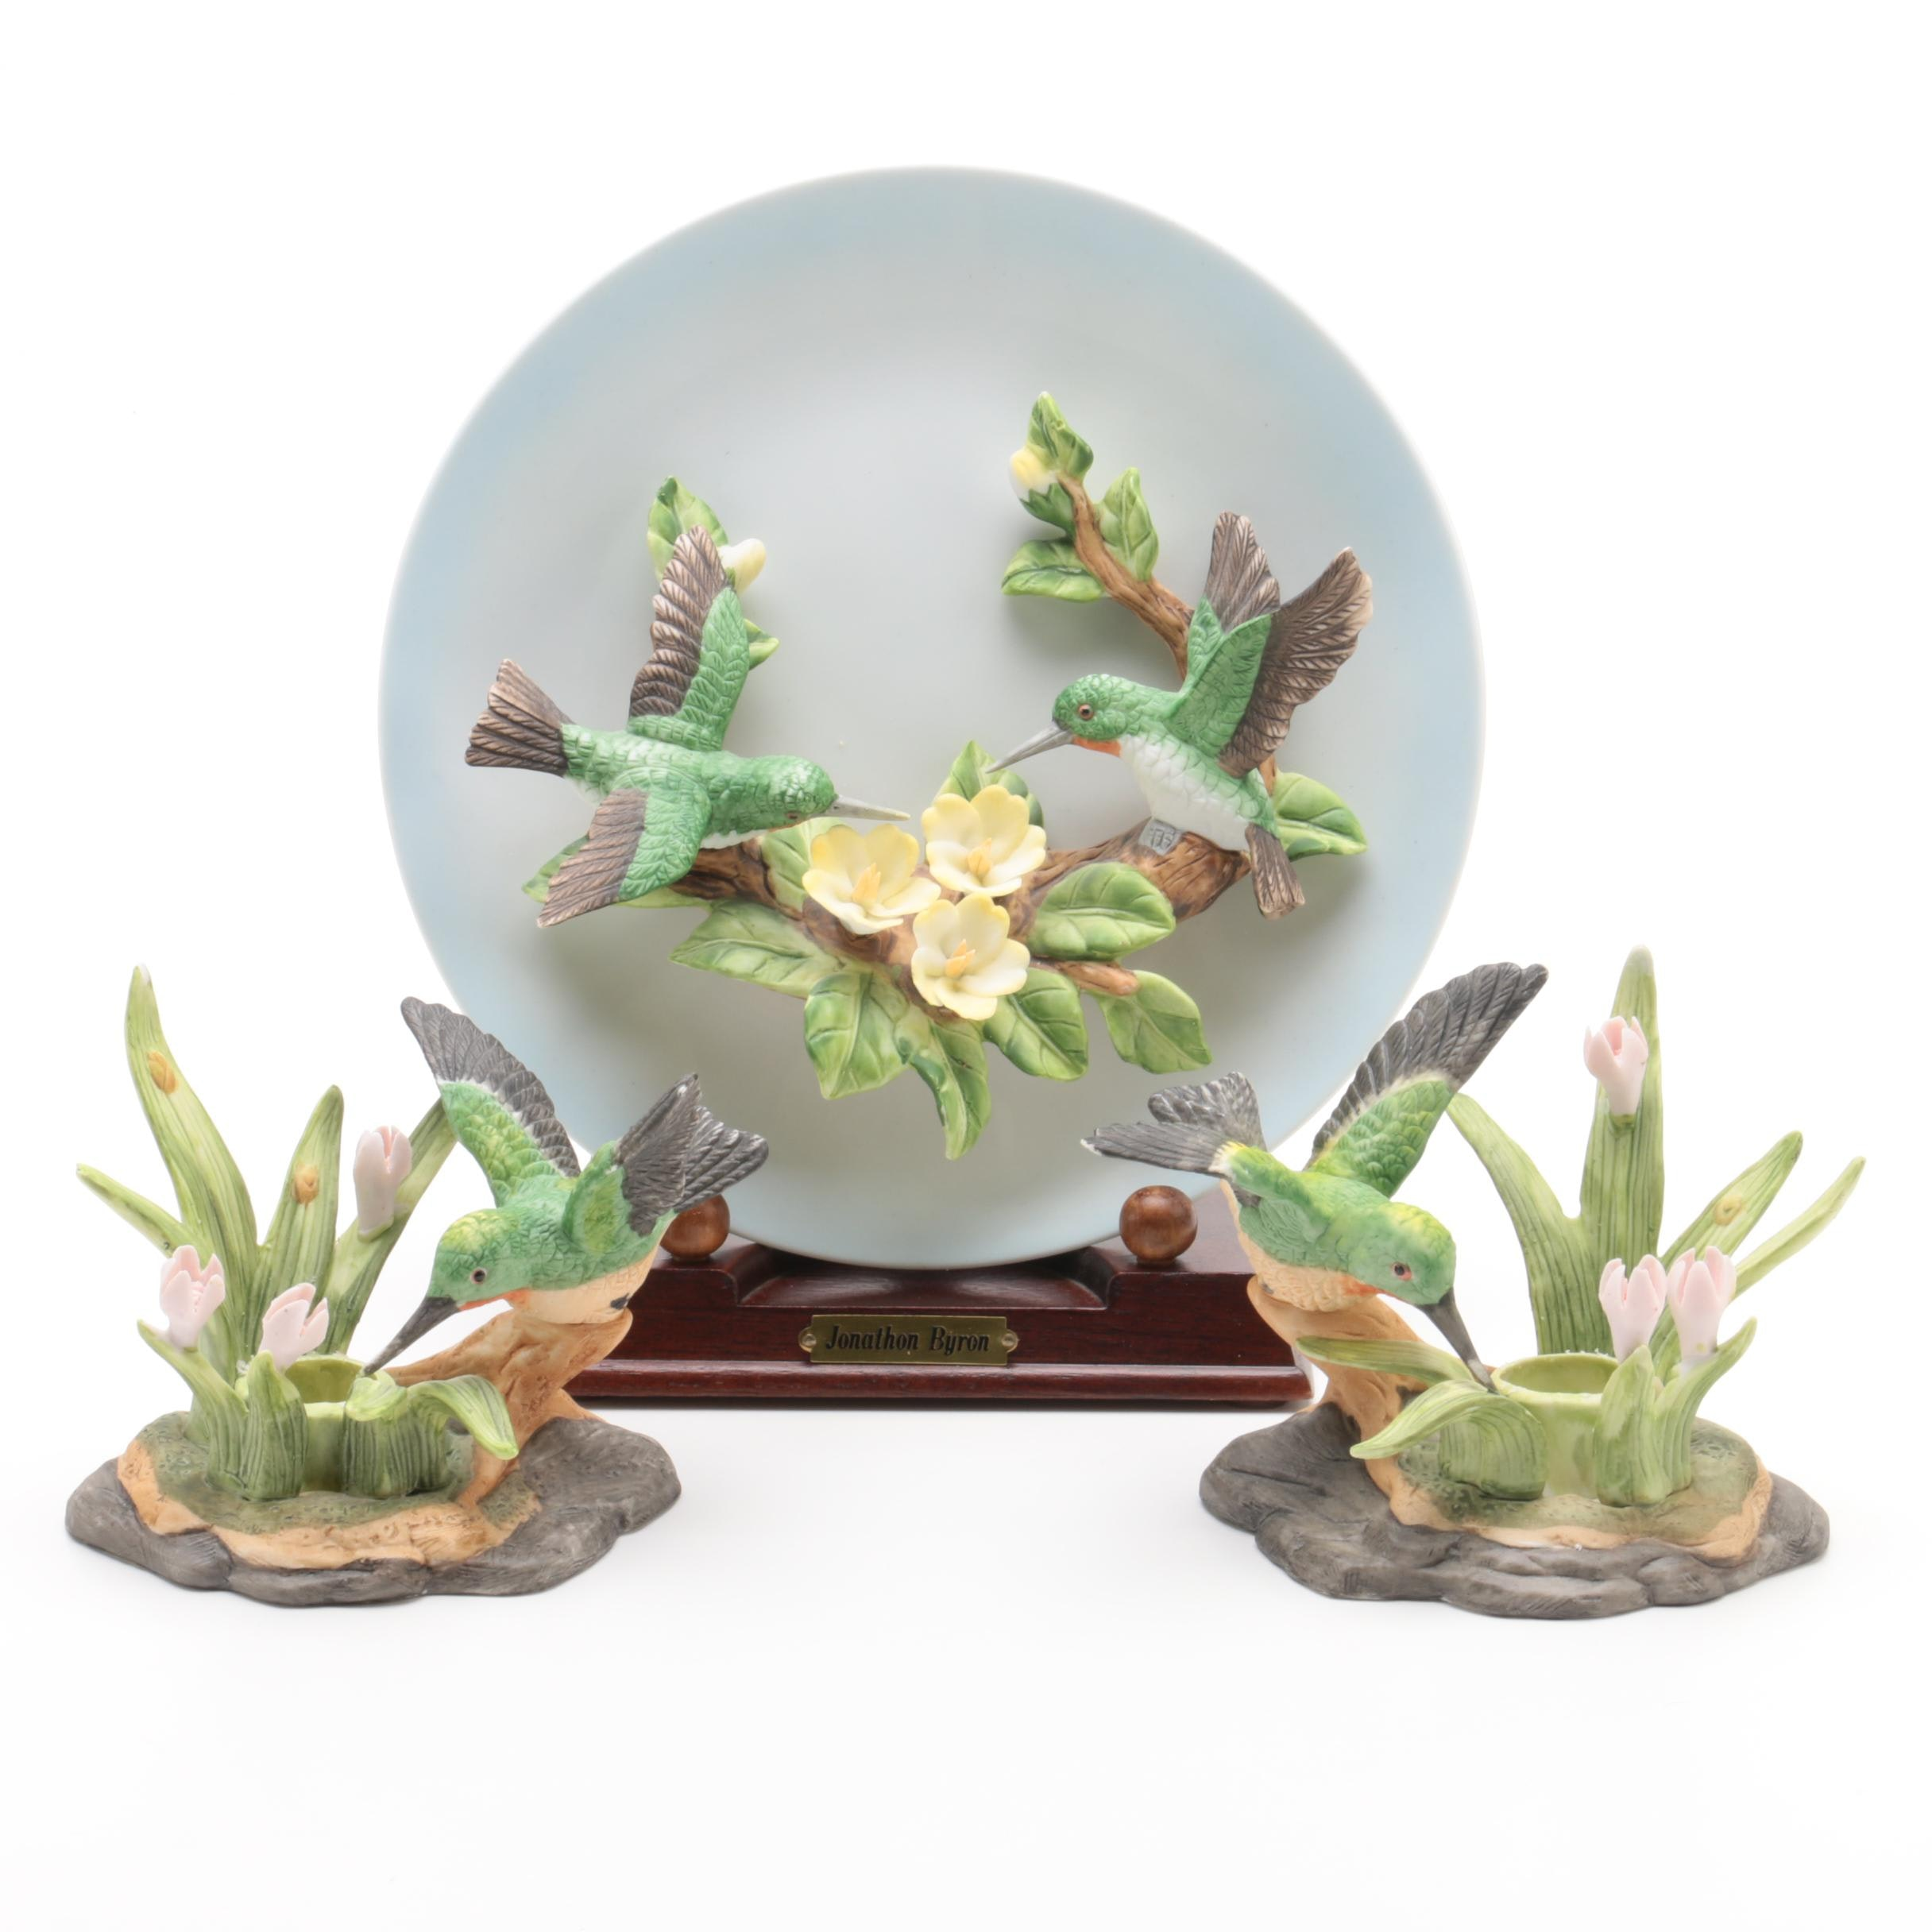 Jonathon Byron Collector's Plate and Hummingbird Figural Candleholders